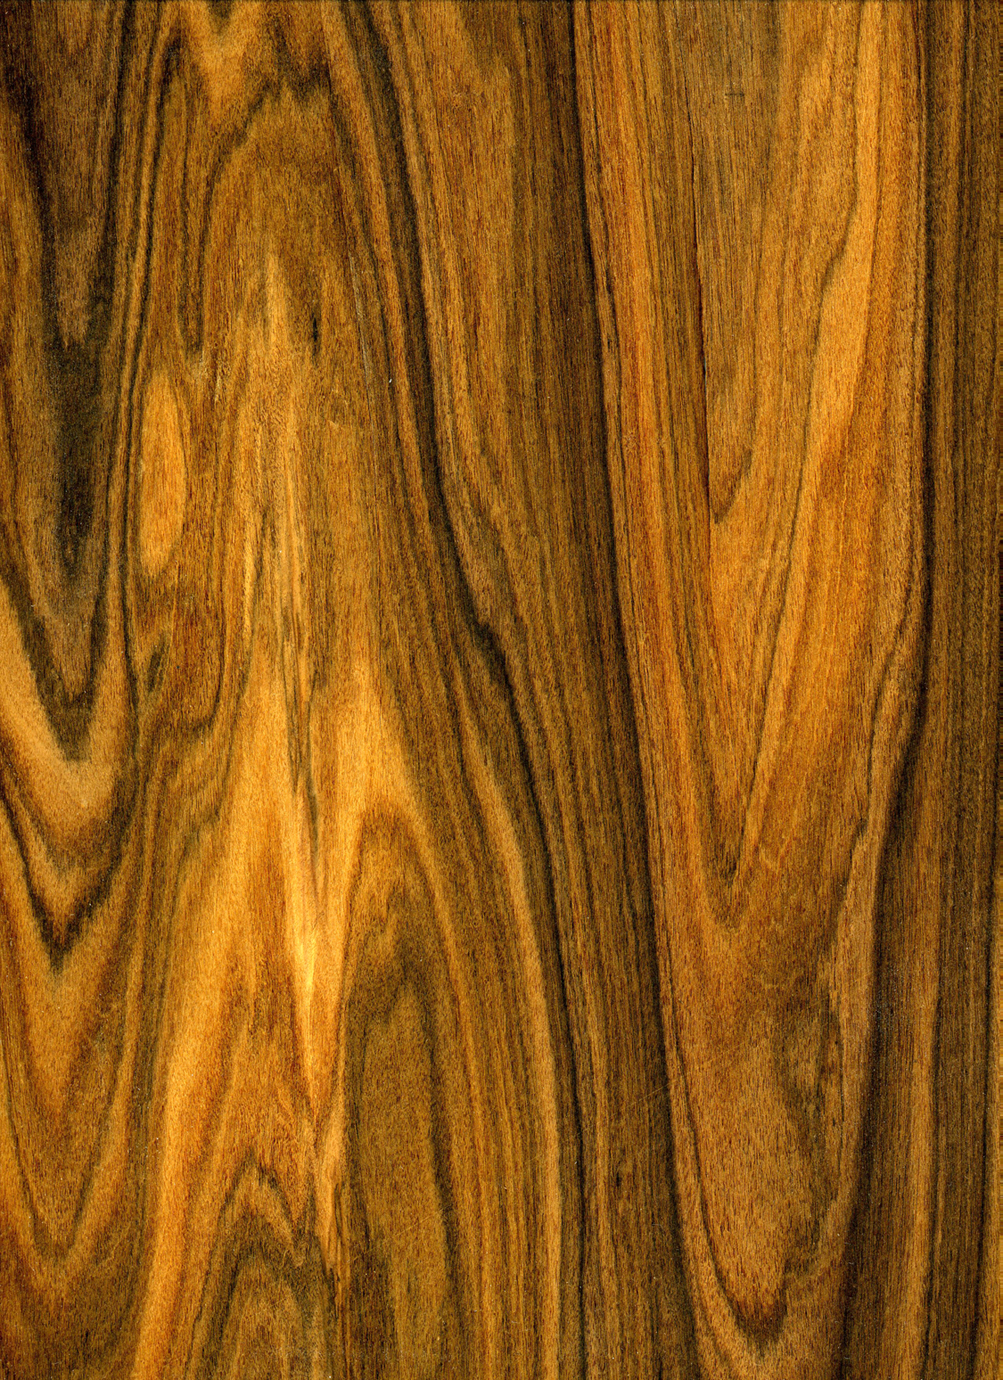 exsotic wood